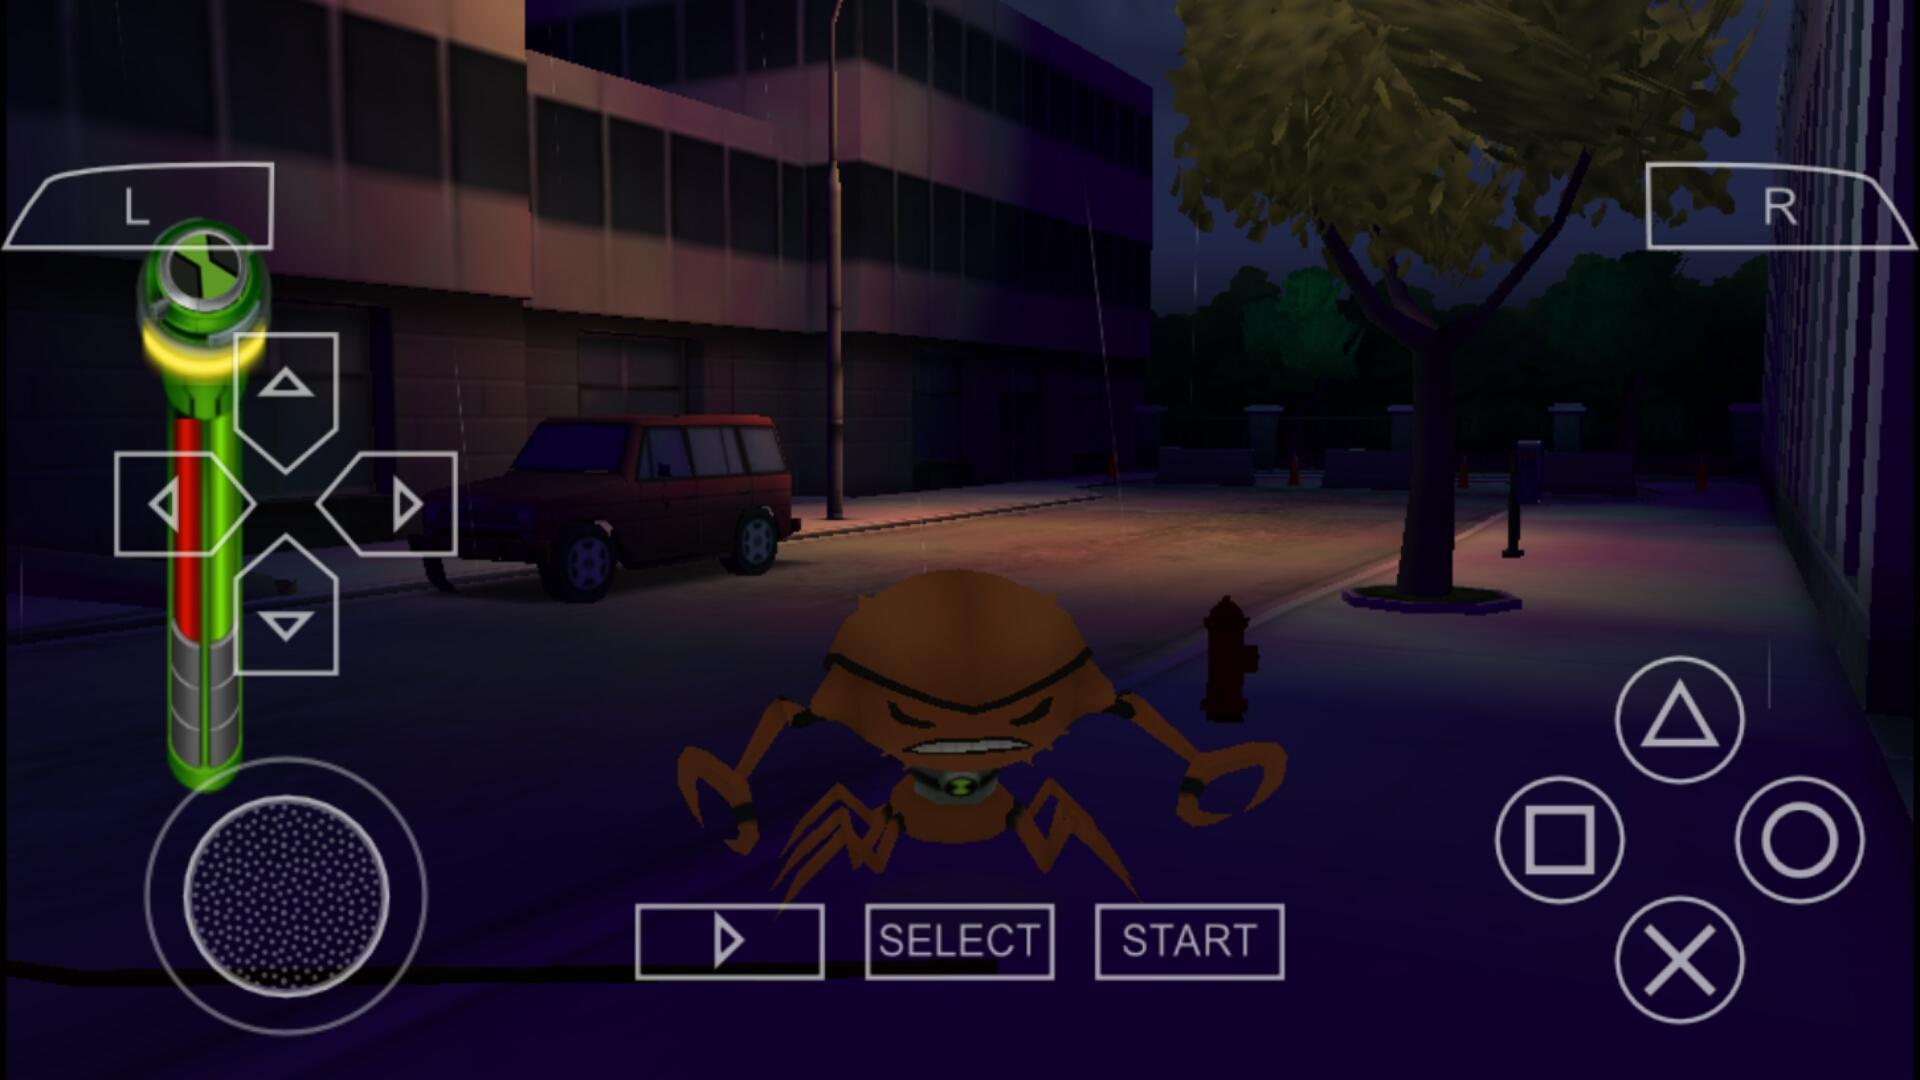 Ben 10 The Adventure of Ultimate Alien Force for Android - APK Download